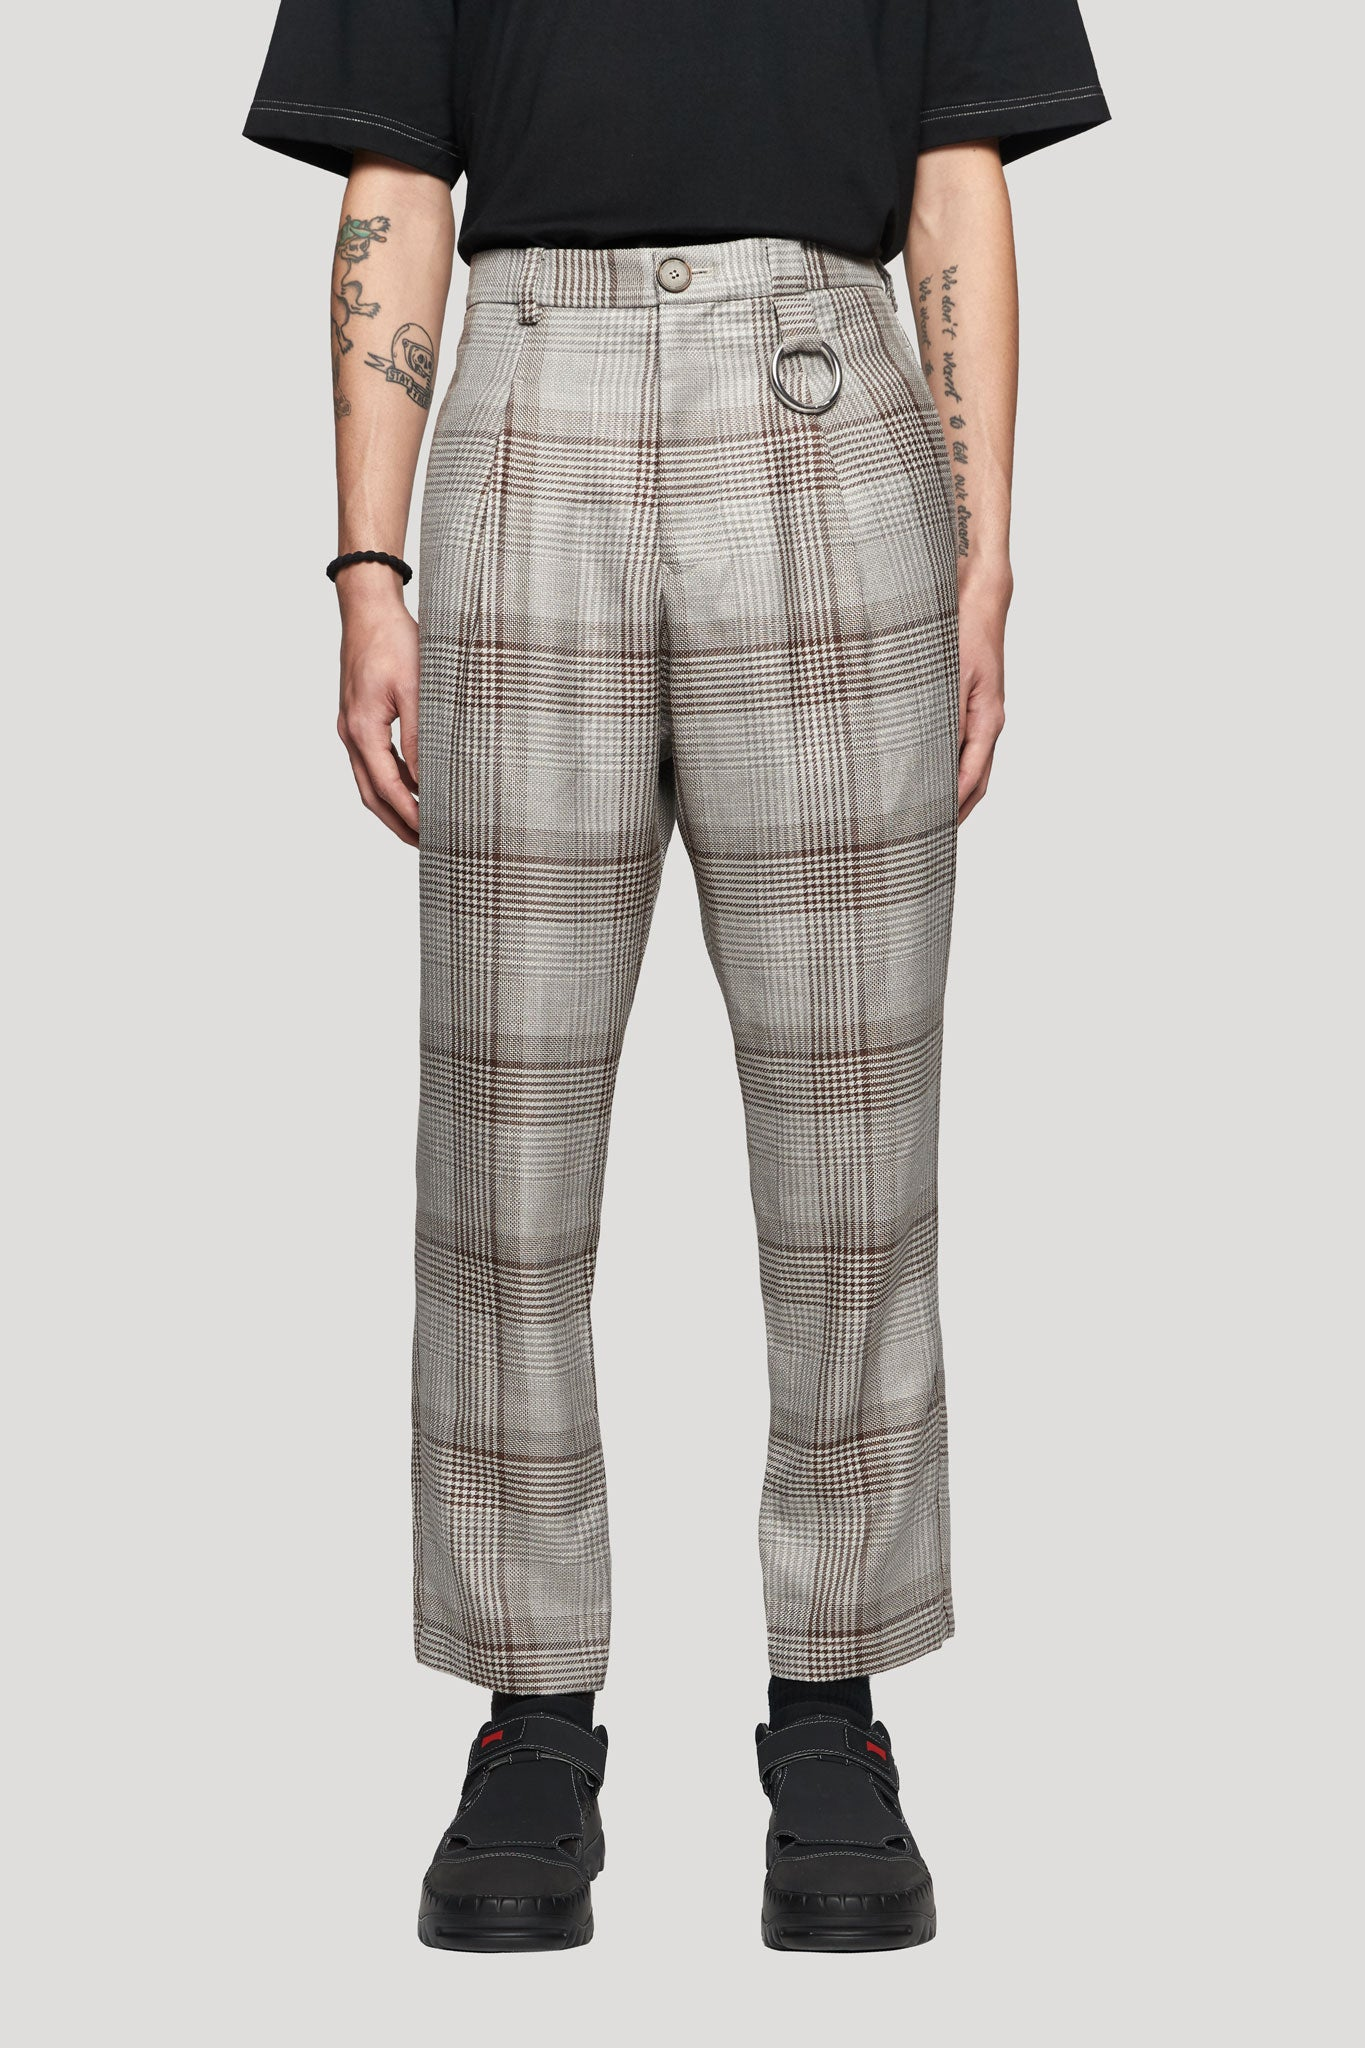 Ritz Formal Slim Trouser Silver Soil Oversized Plaids